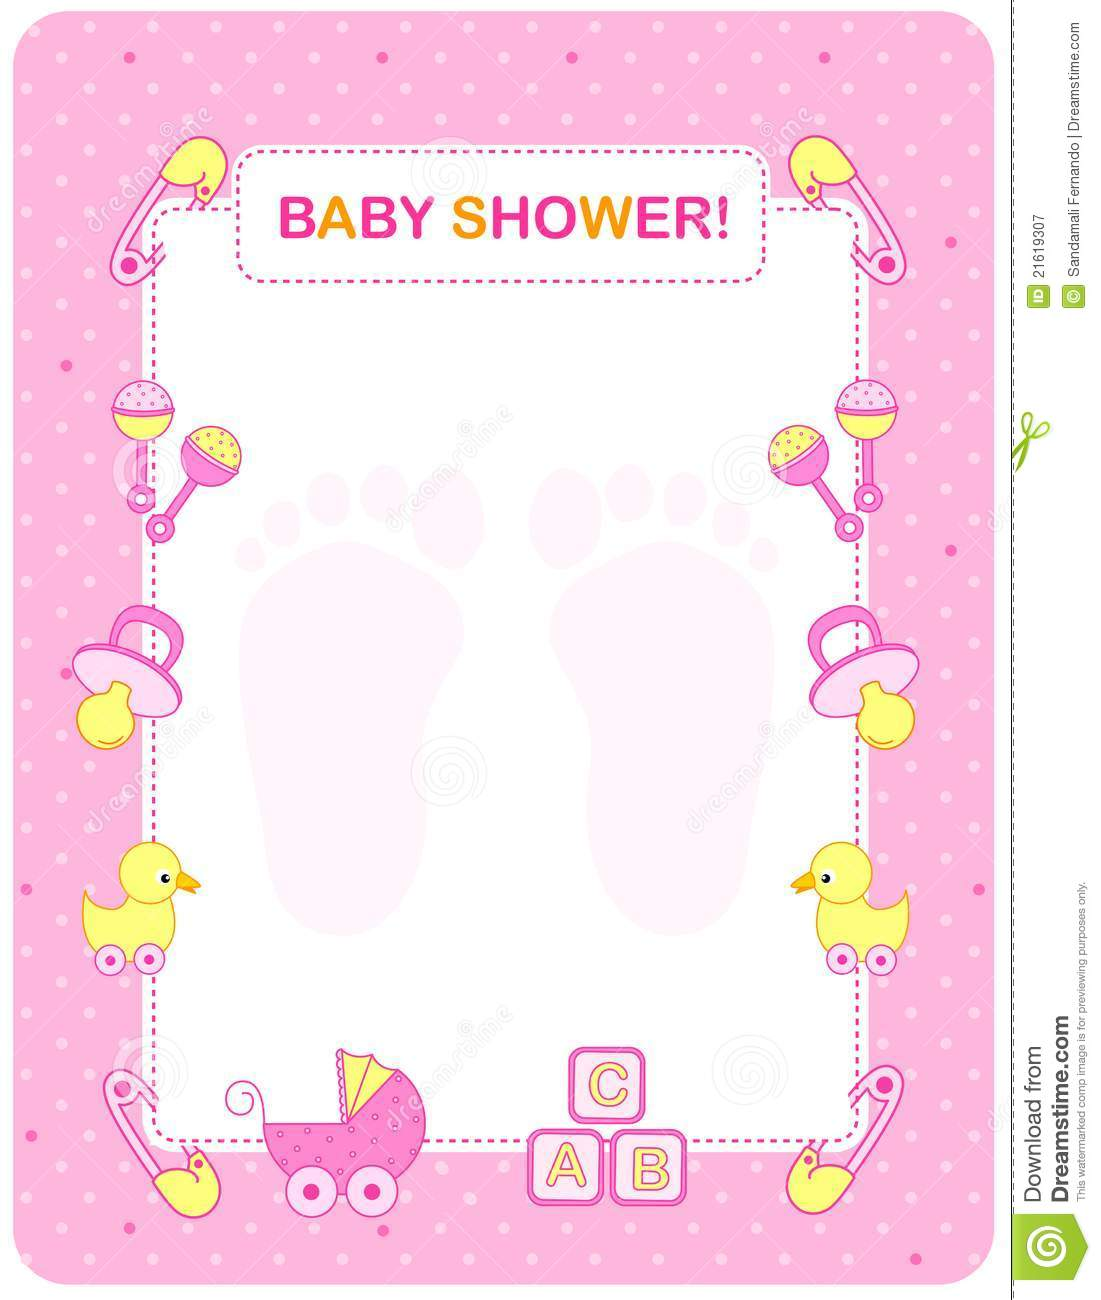 Full Size of Baby Shower:graceful Baby Shower Cards Image Designs Baby Shower Greetings Elegant Baby Shower Baby Shower Diaper Raffle What Is A Baby Shower Baby Shower Essentials